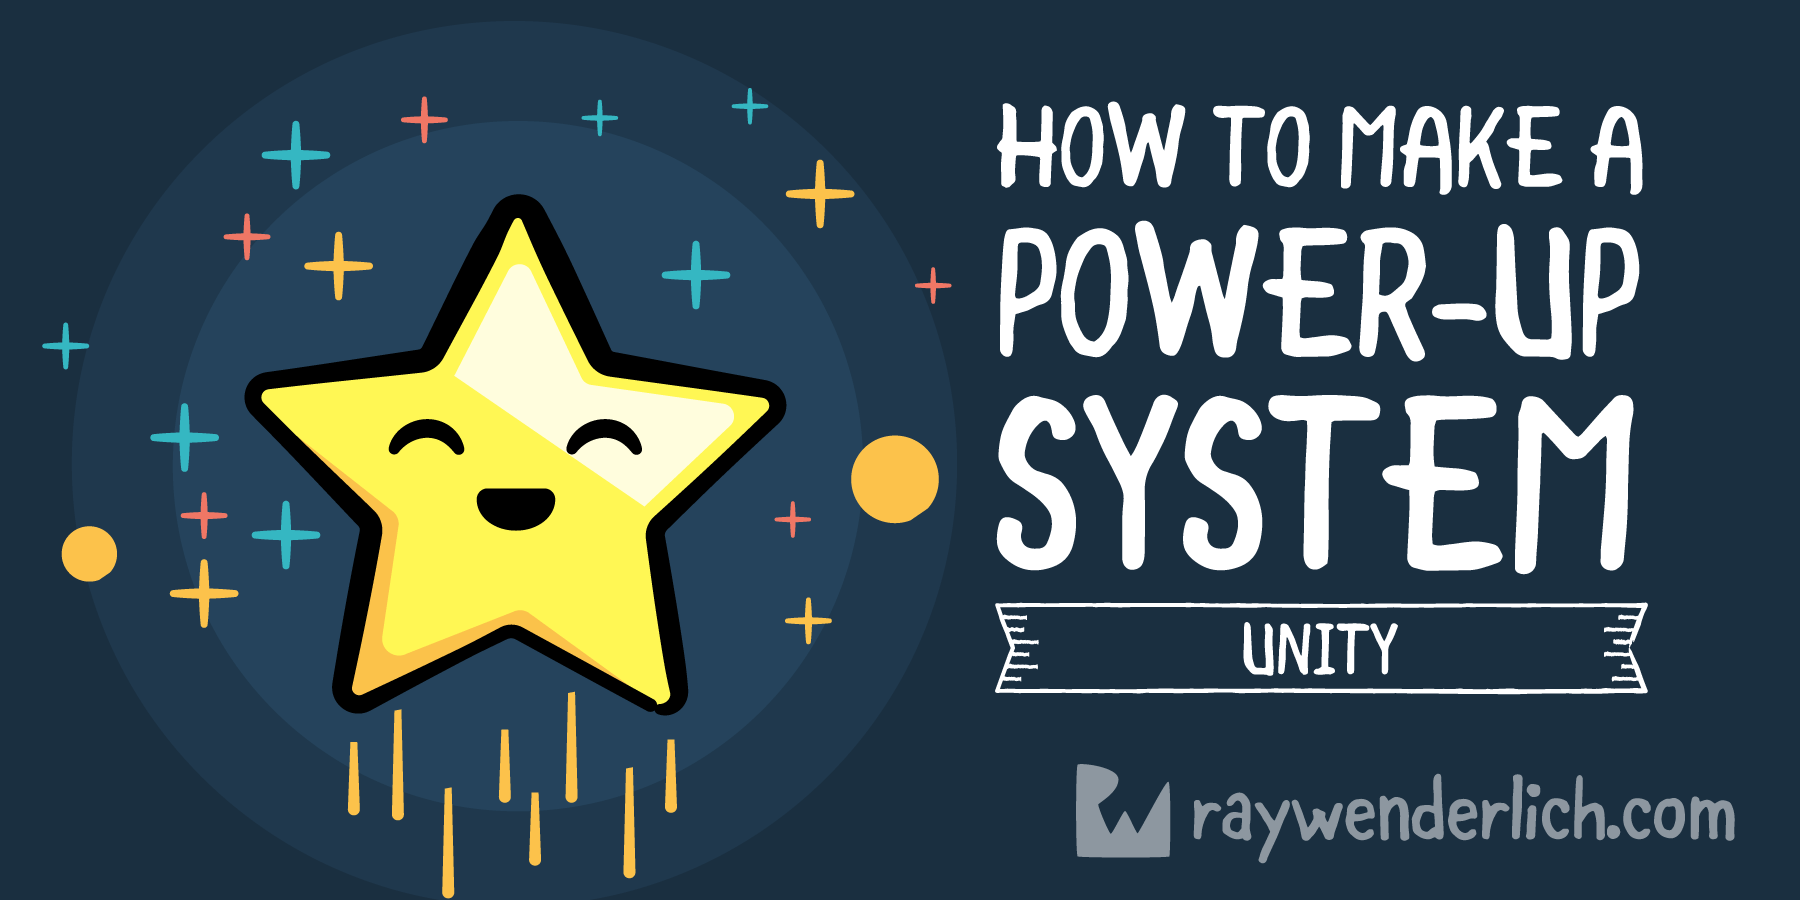 How to make a Power-Up System in Unity | raywenderlich com